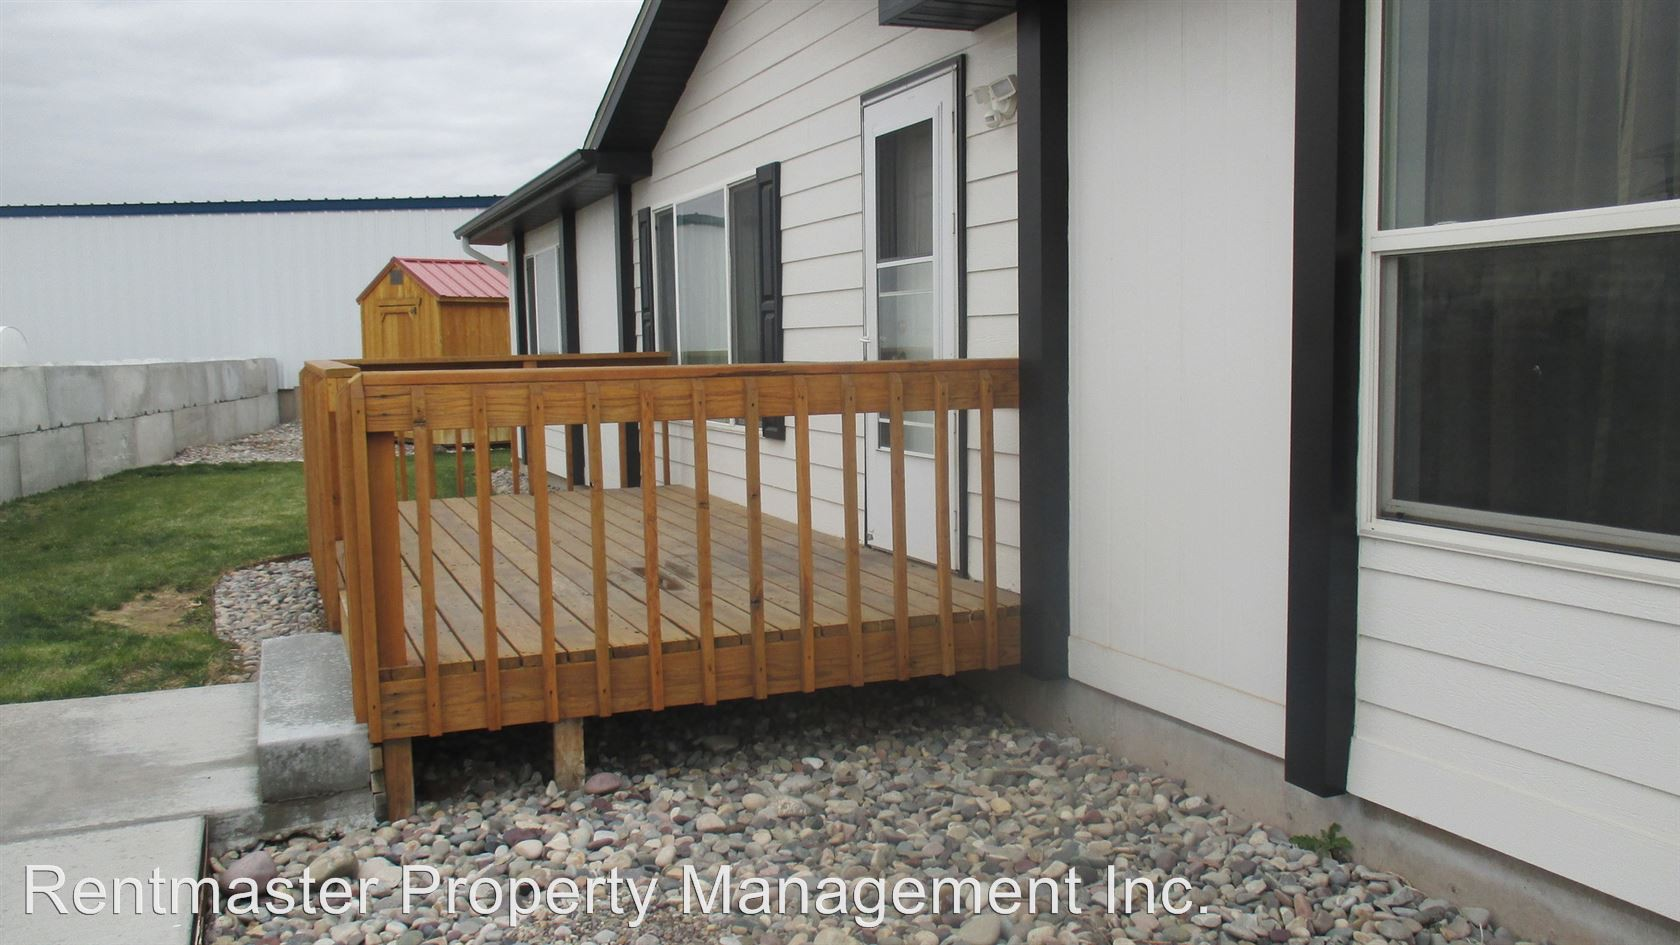 4330 n yellowstone hwy idaho falls id 83401 3 bedroom house for rent for 850month zumper